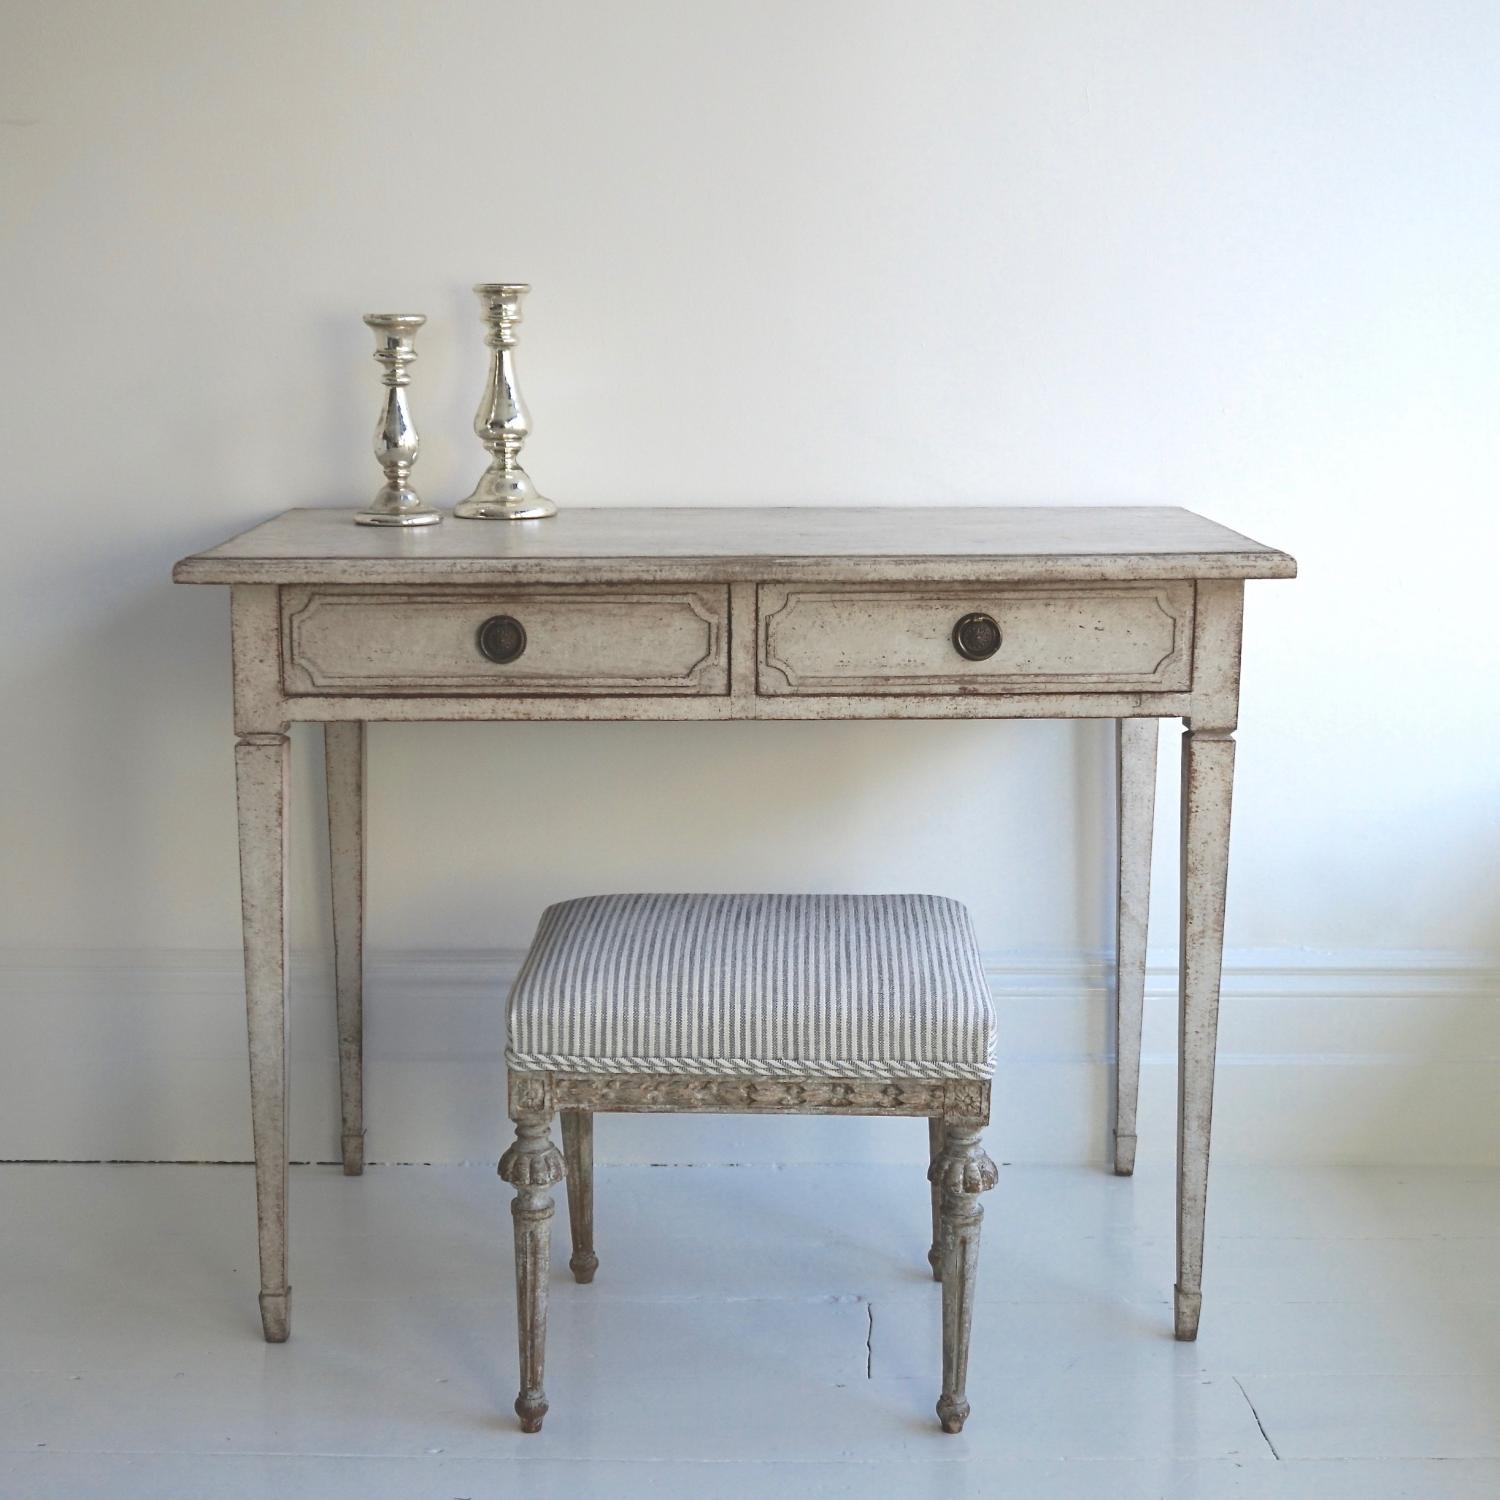 19th CENTURY SWEDISH GUSTAVIAN STYLE TABLE